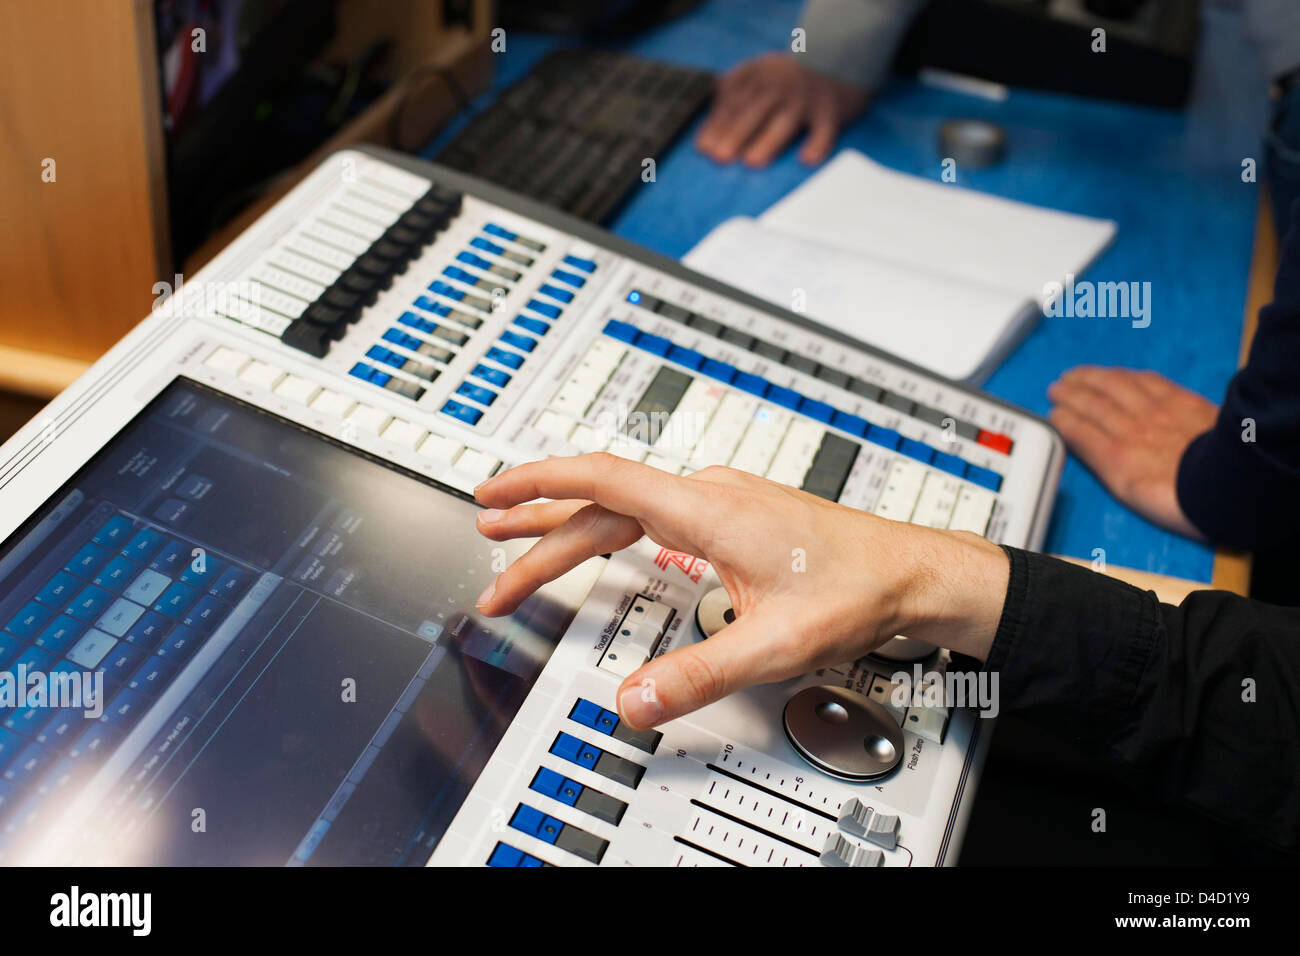 TV control panel. - Stock Image